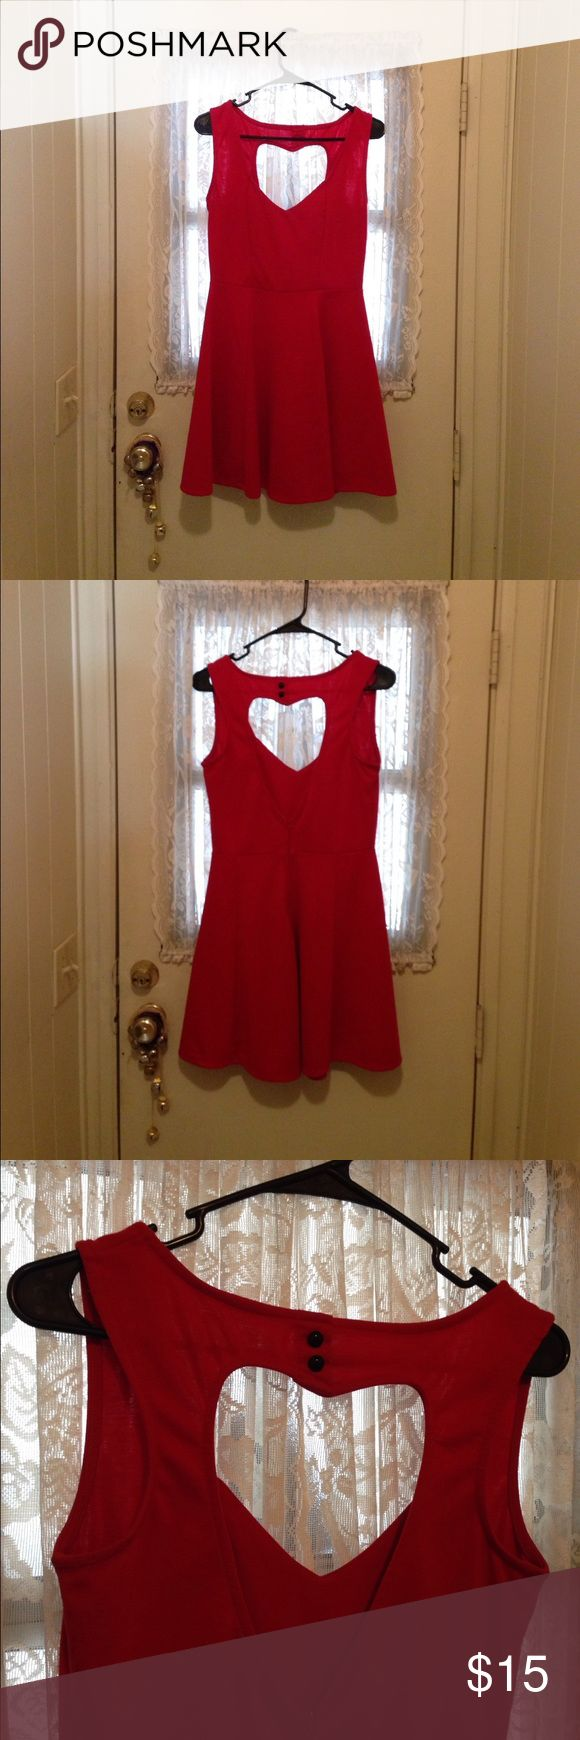 Adorable Soft Med Wet Seal Heart Back Dress This supersoft super adorable, very 30 red heart backed dress is just perfect for summer! In great condition with black vintage buttons in the back above the heart. Very cute and very flirty super adorable and soft. Size medium wet seal Wet Seal Dresses Mini